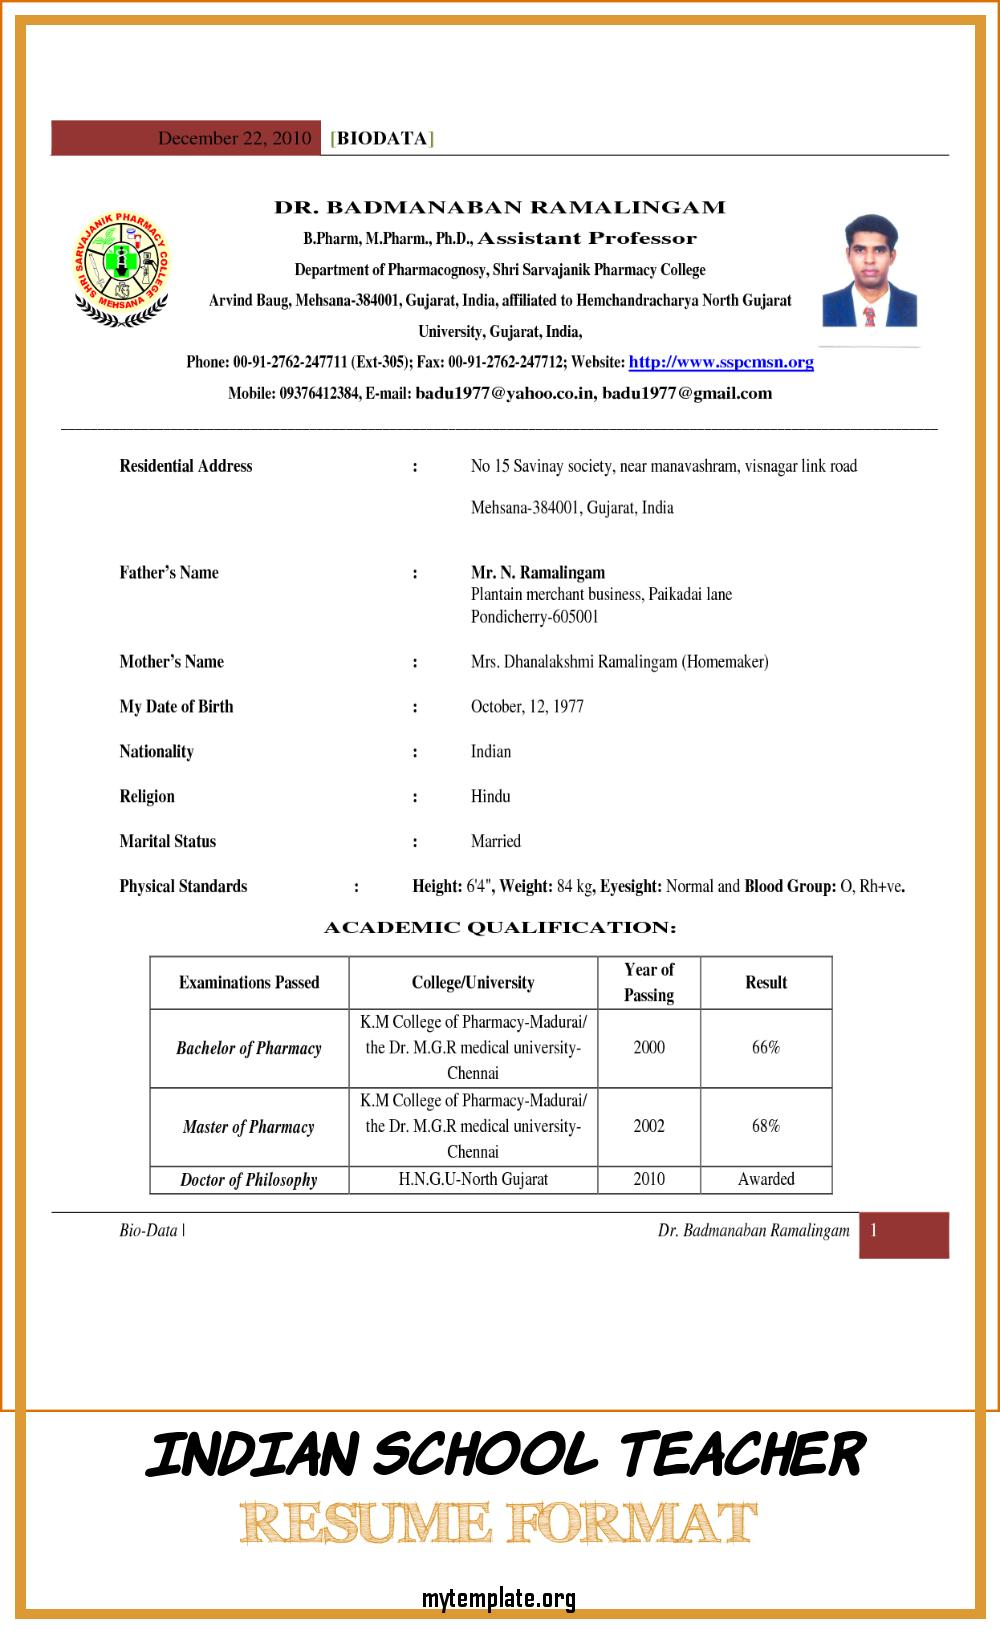 indian school teacher resume format free templates primary word of pin possible skills Resume Primary School Teacher Resume Word Format